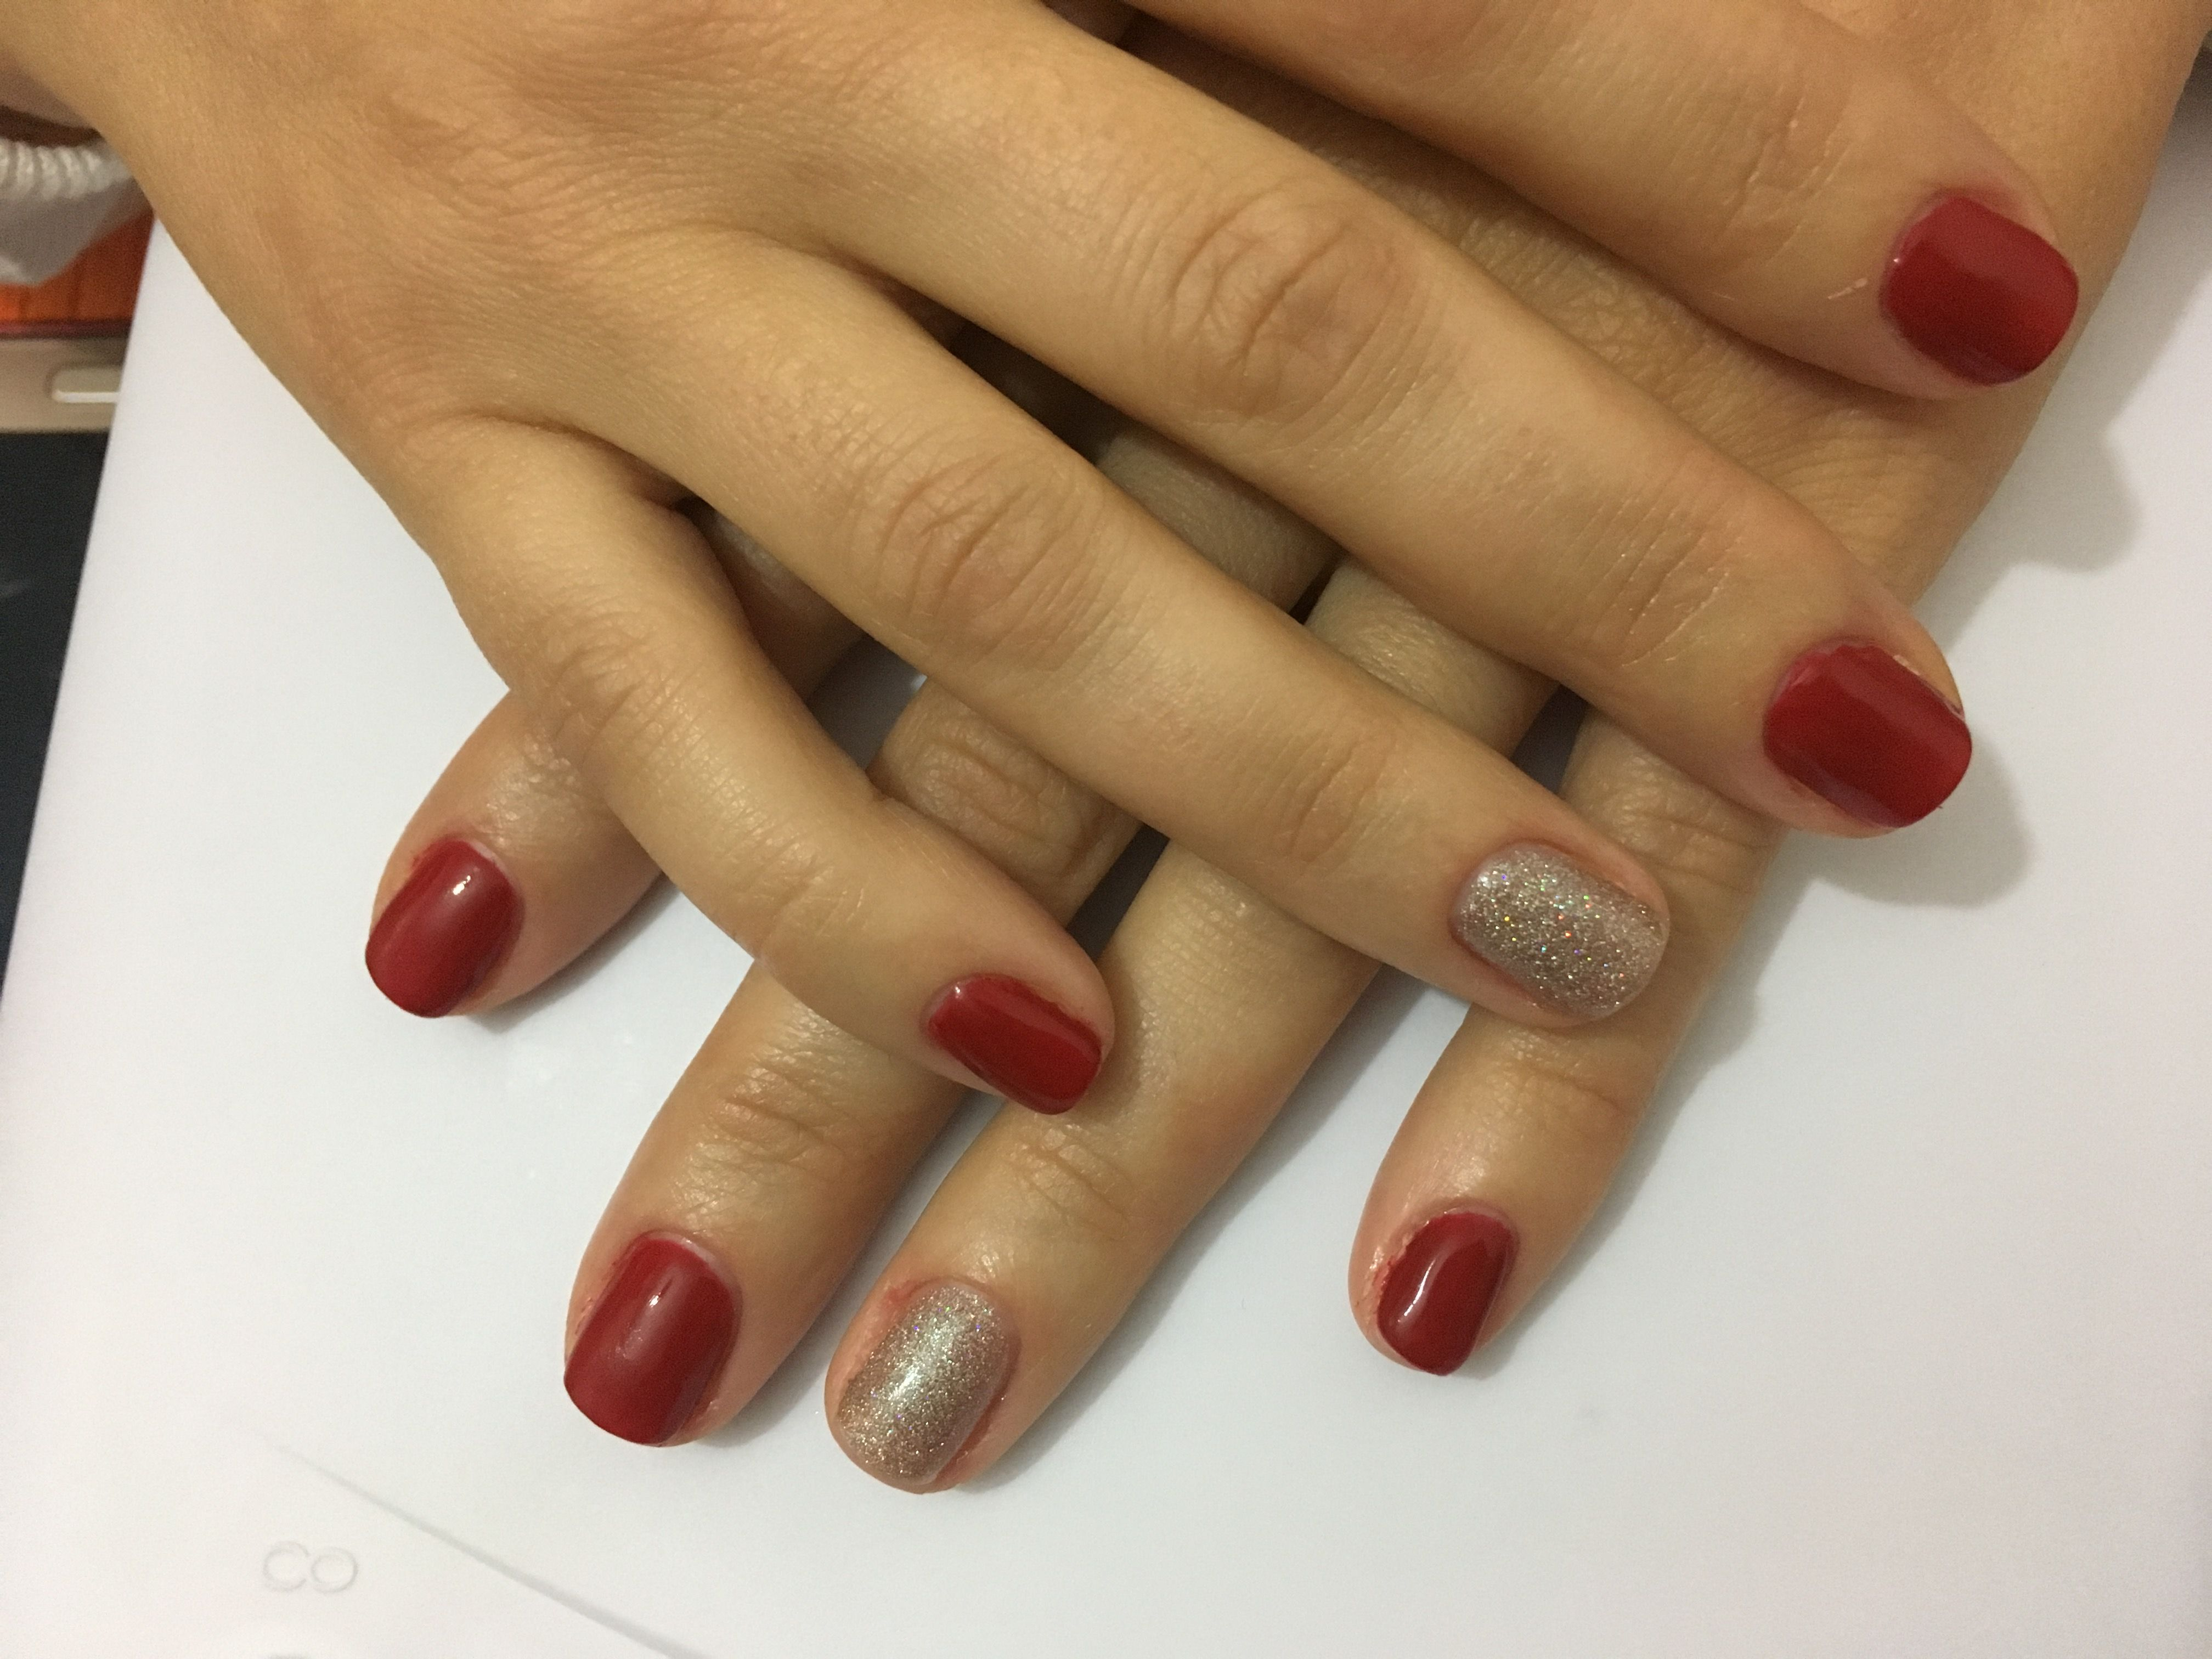 OPI red + Cupio Nefertiti | Nails | Pinterest | Opi red and OPI